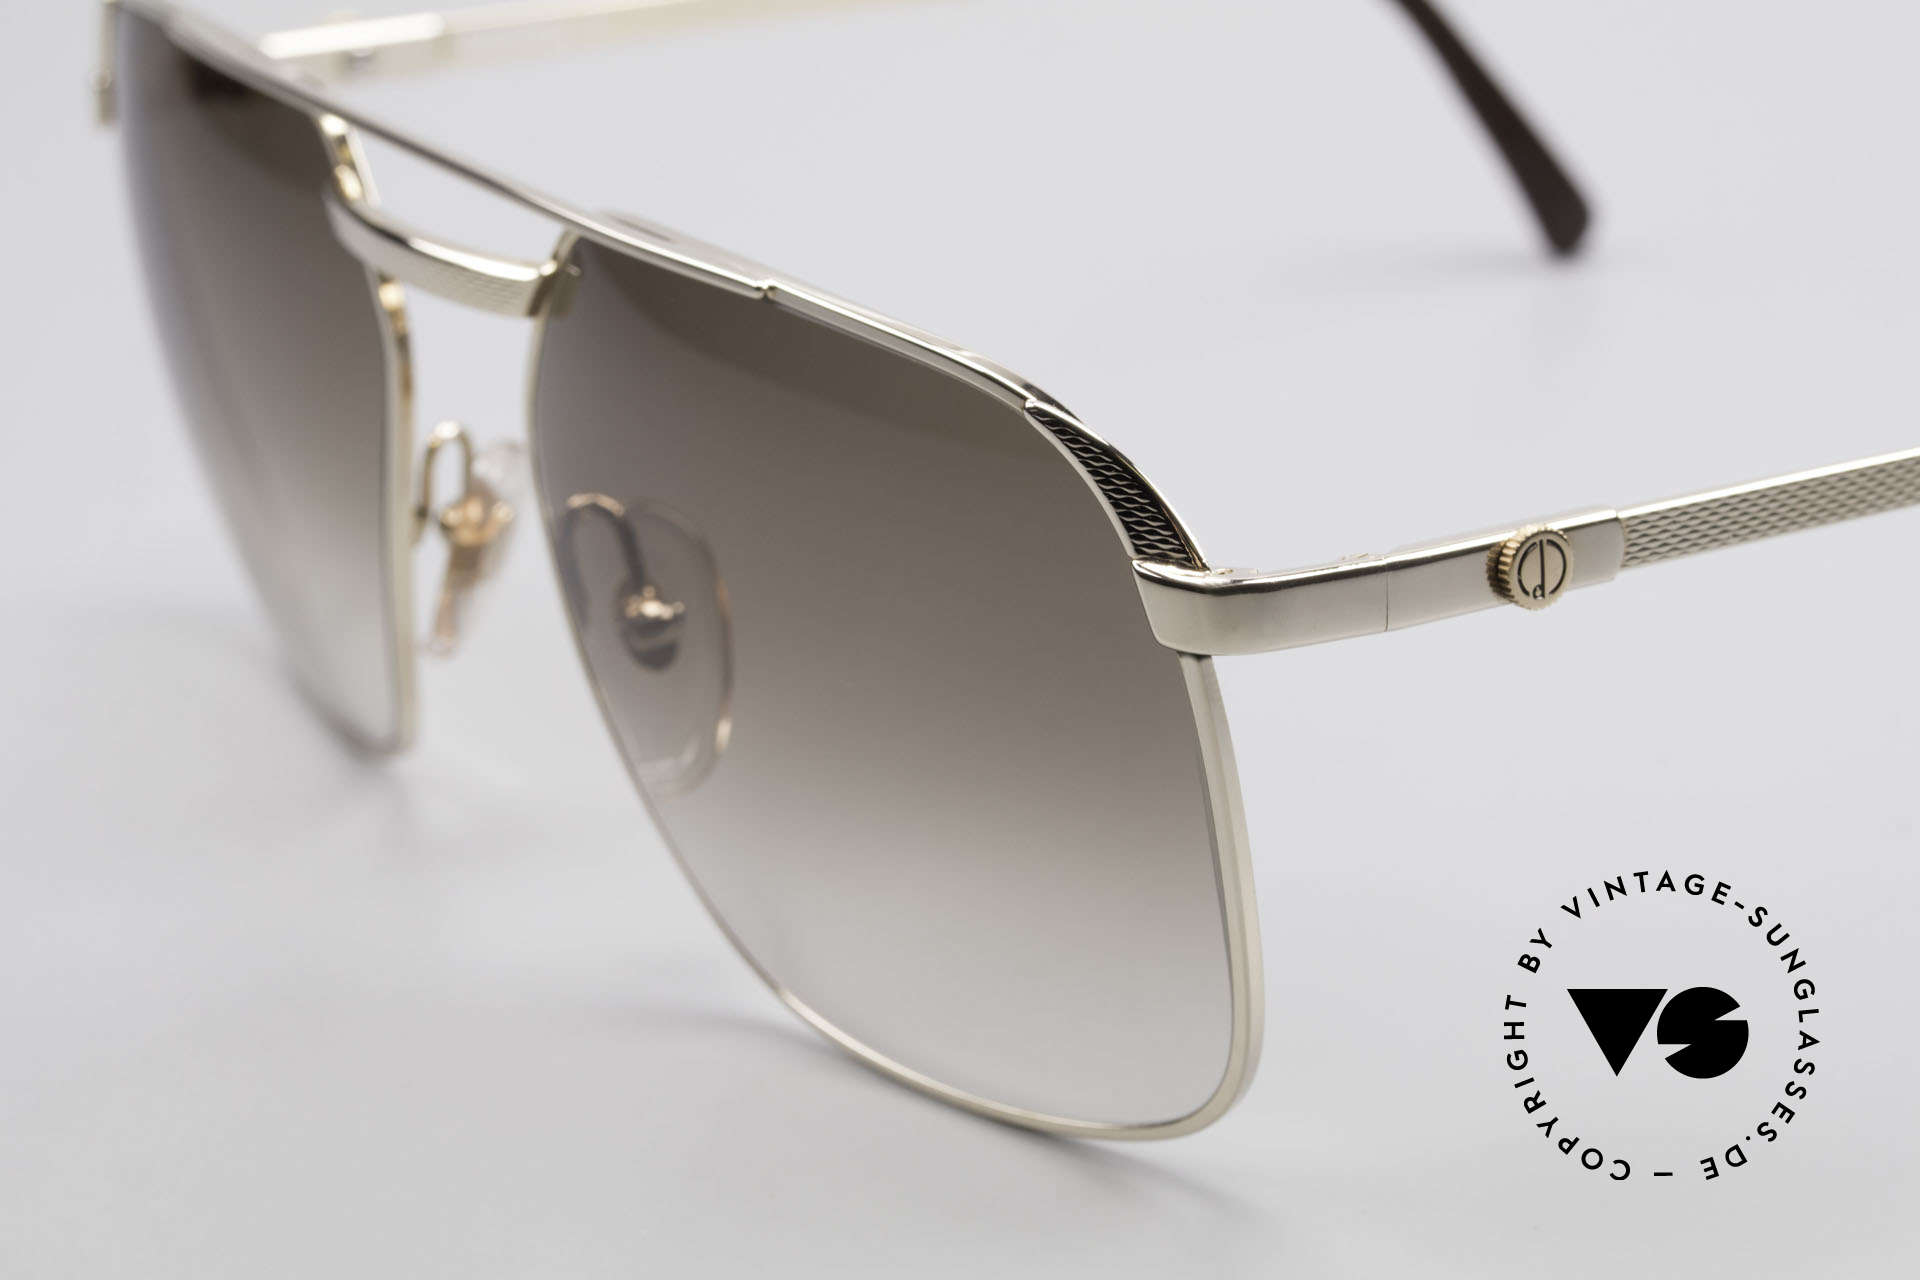 Dunhill 6011 Gold Plated 80's Sunglasses, 'barley': hundreds of minute facets to give a soft sheen, Made for Men